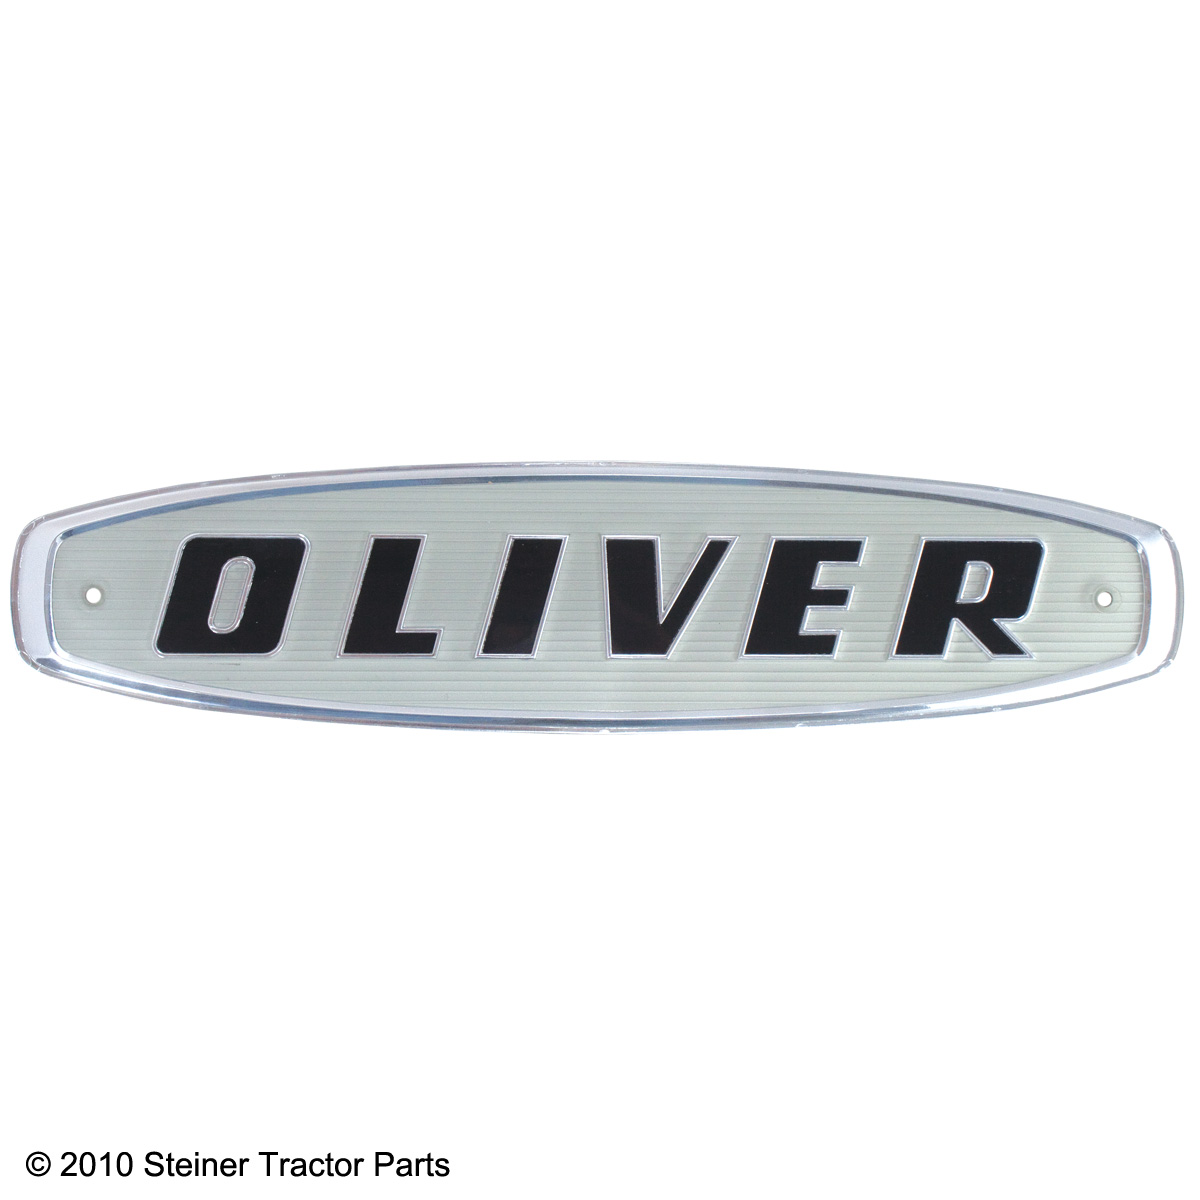 Brand new front emblem for the following models: